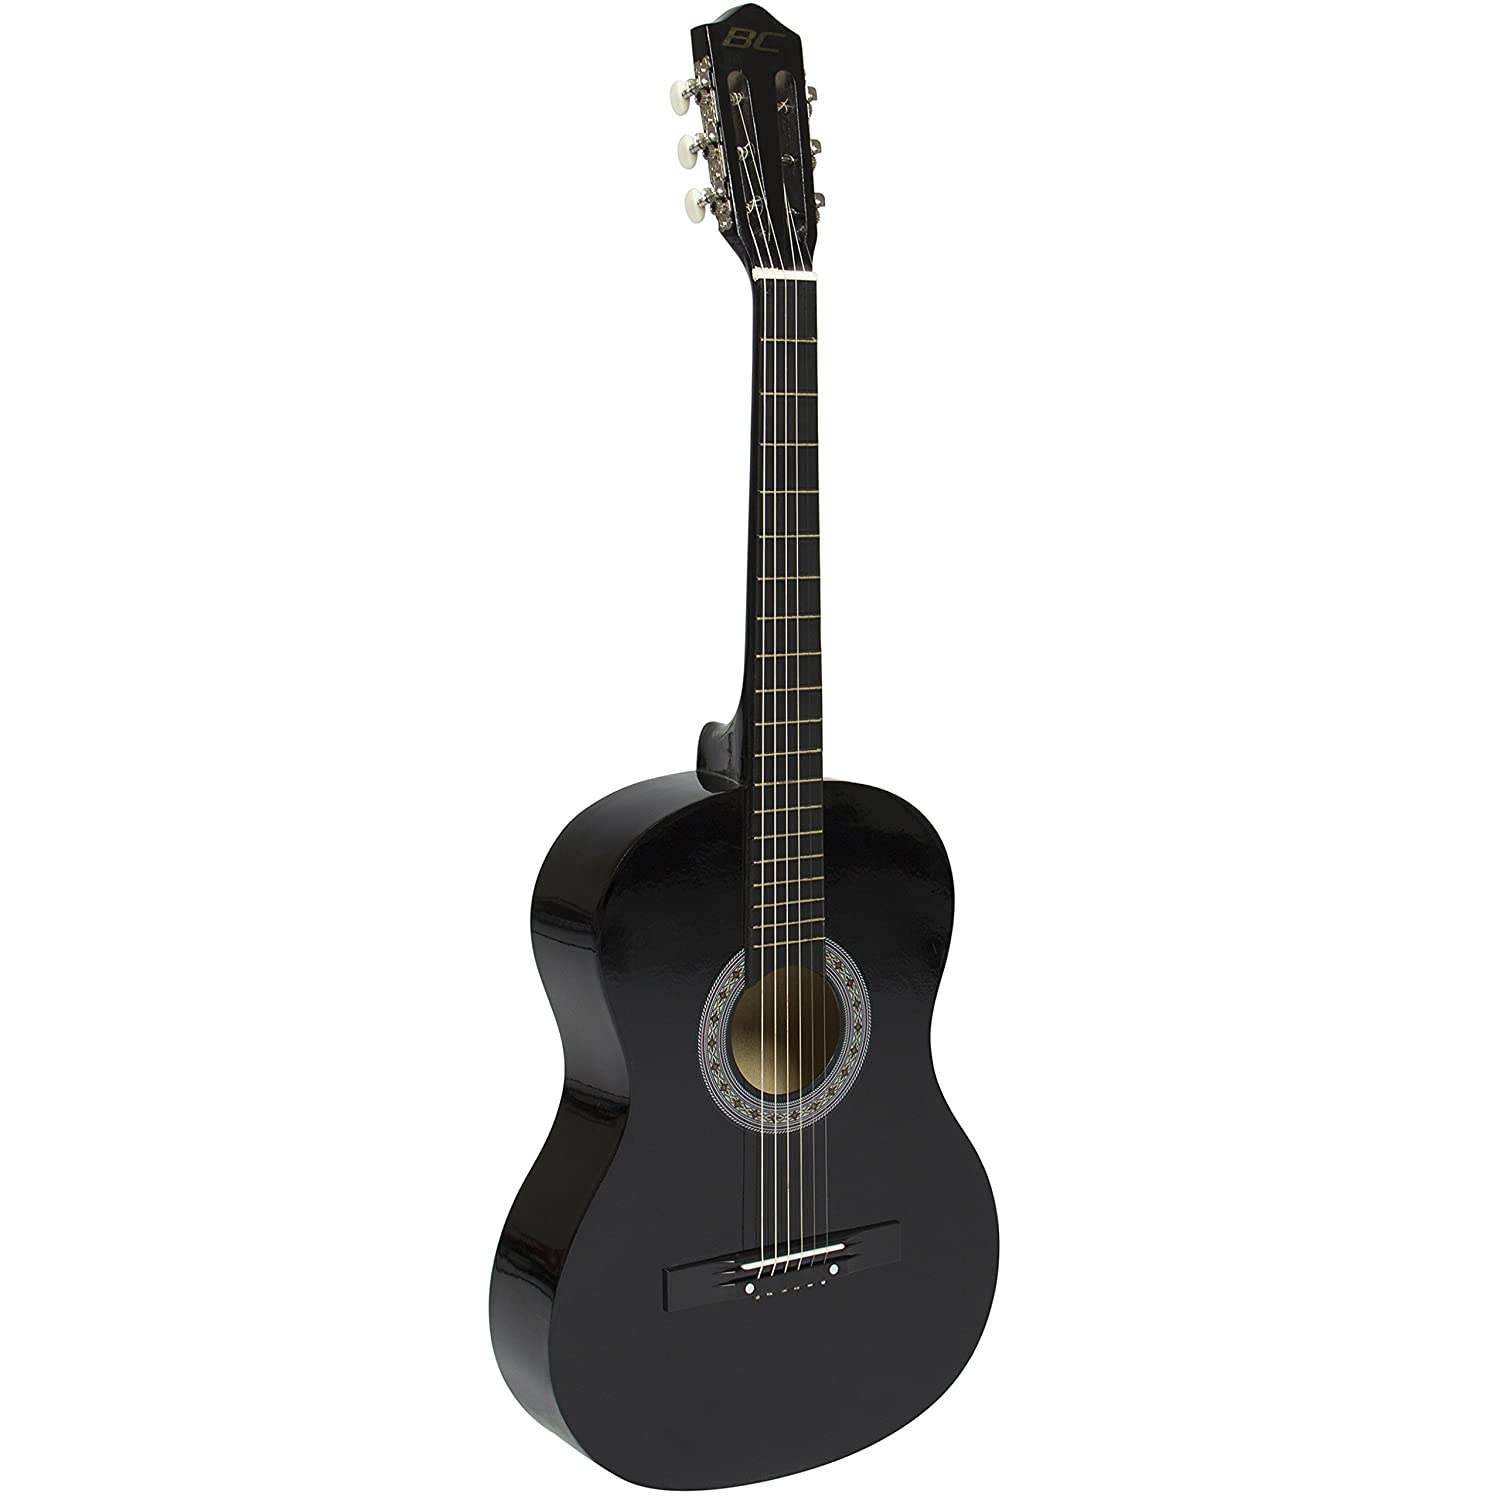 All-Wood Construction Black Guitar, 19 Frets, Steel Strings, Attractive Finish